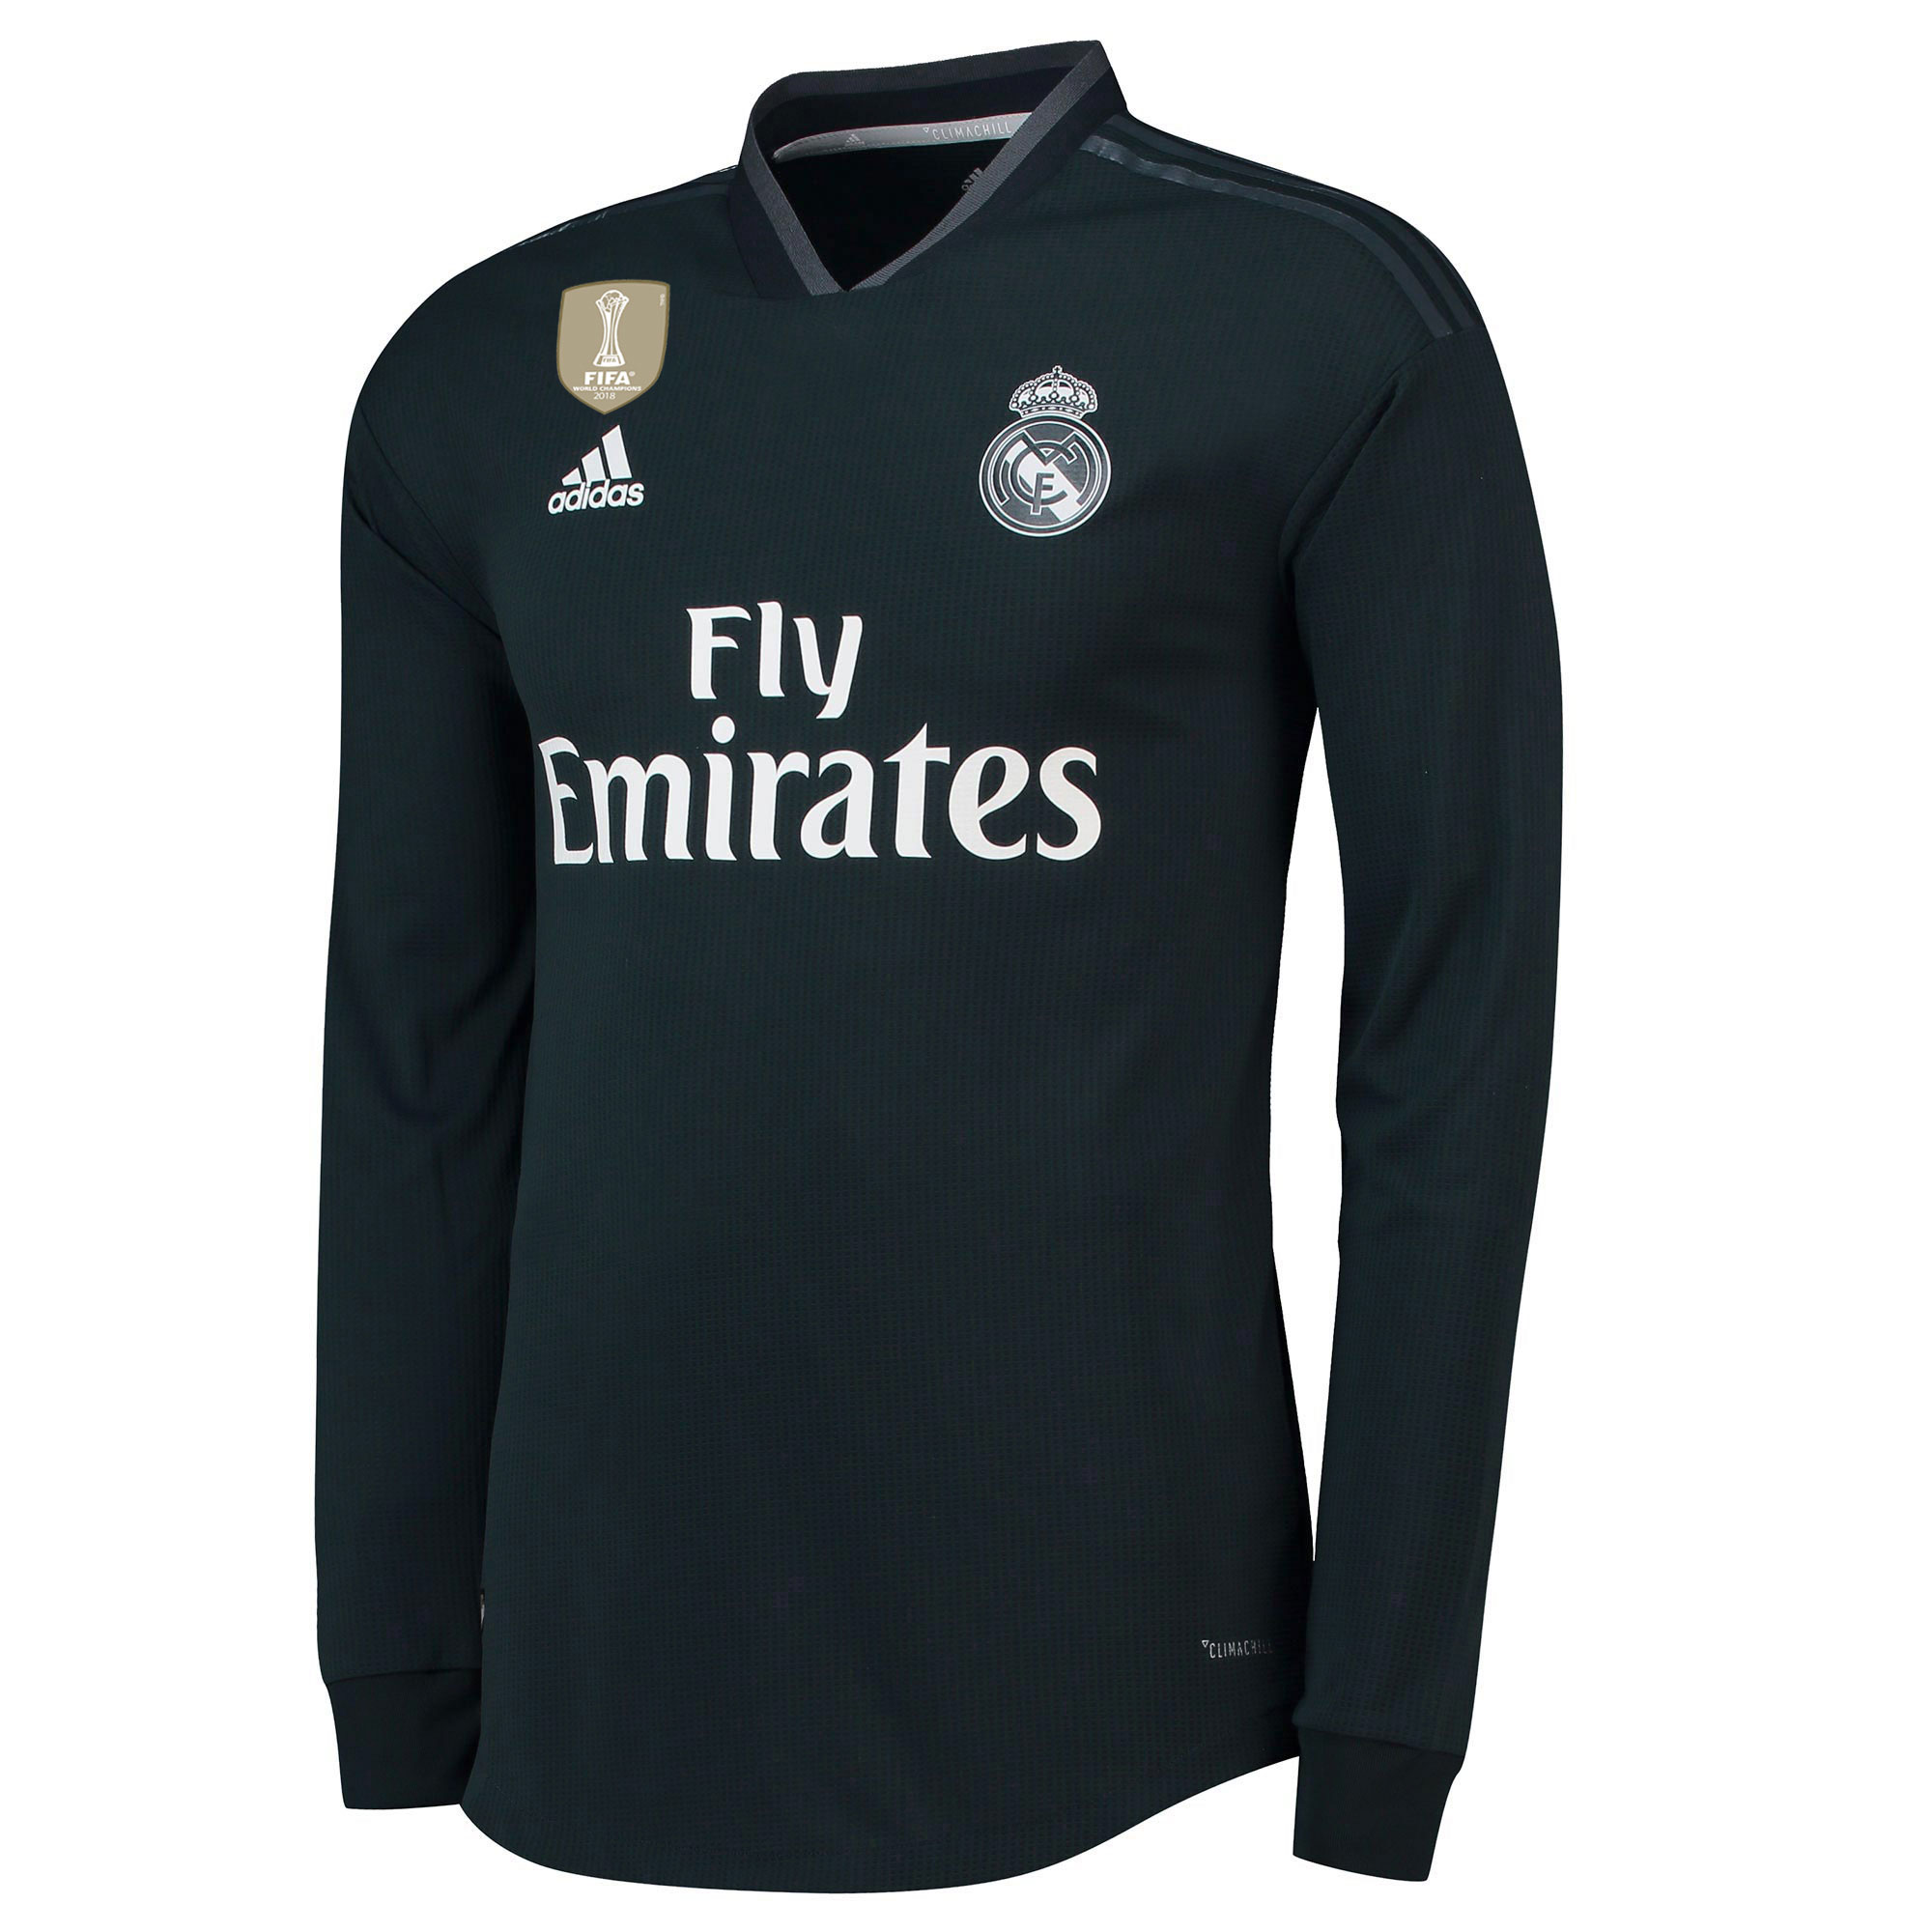 Image of Real Madrid Away Authentic Shirt 2018-19 - Long Sleeve